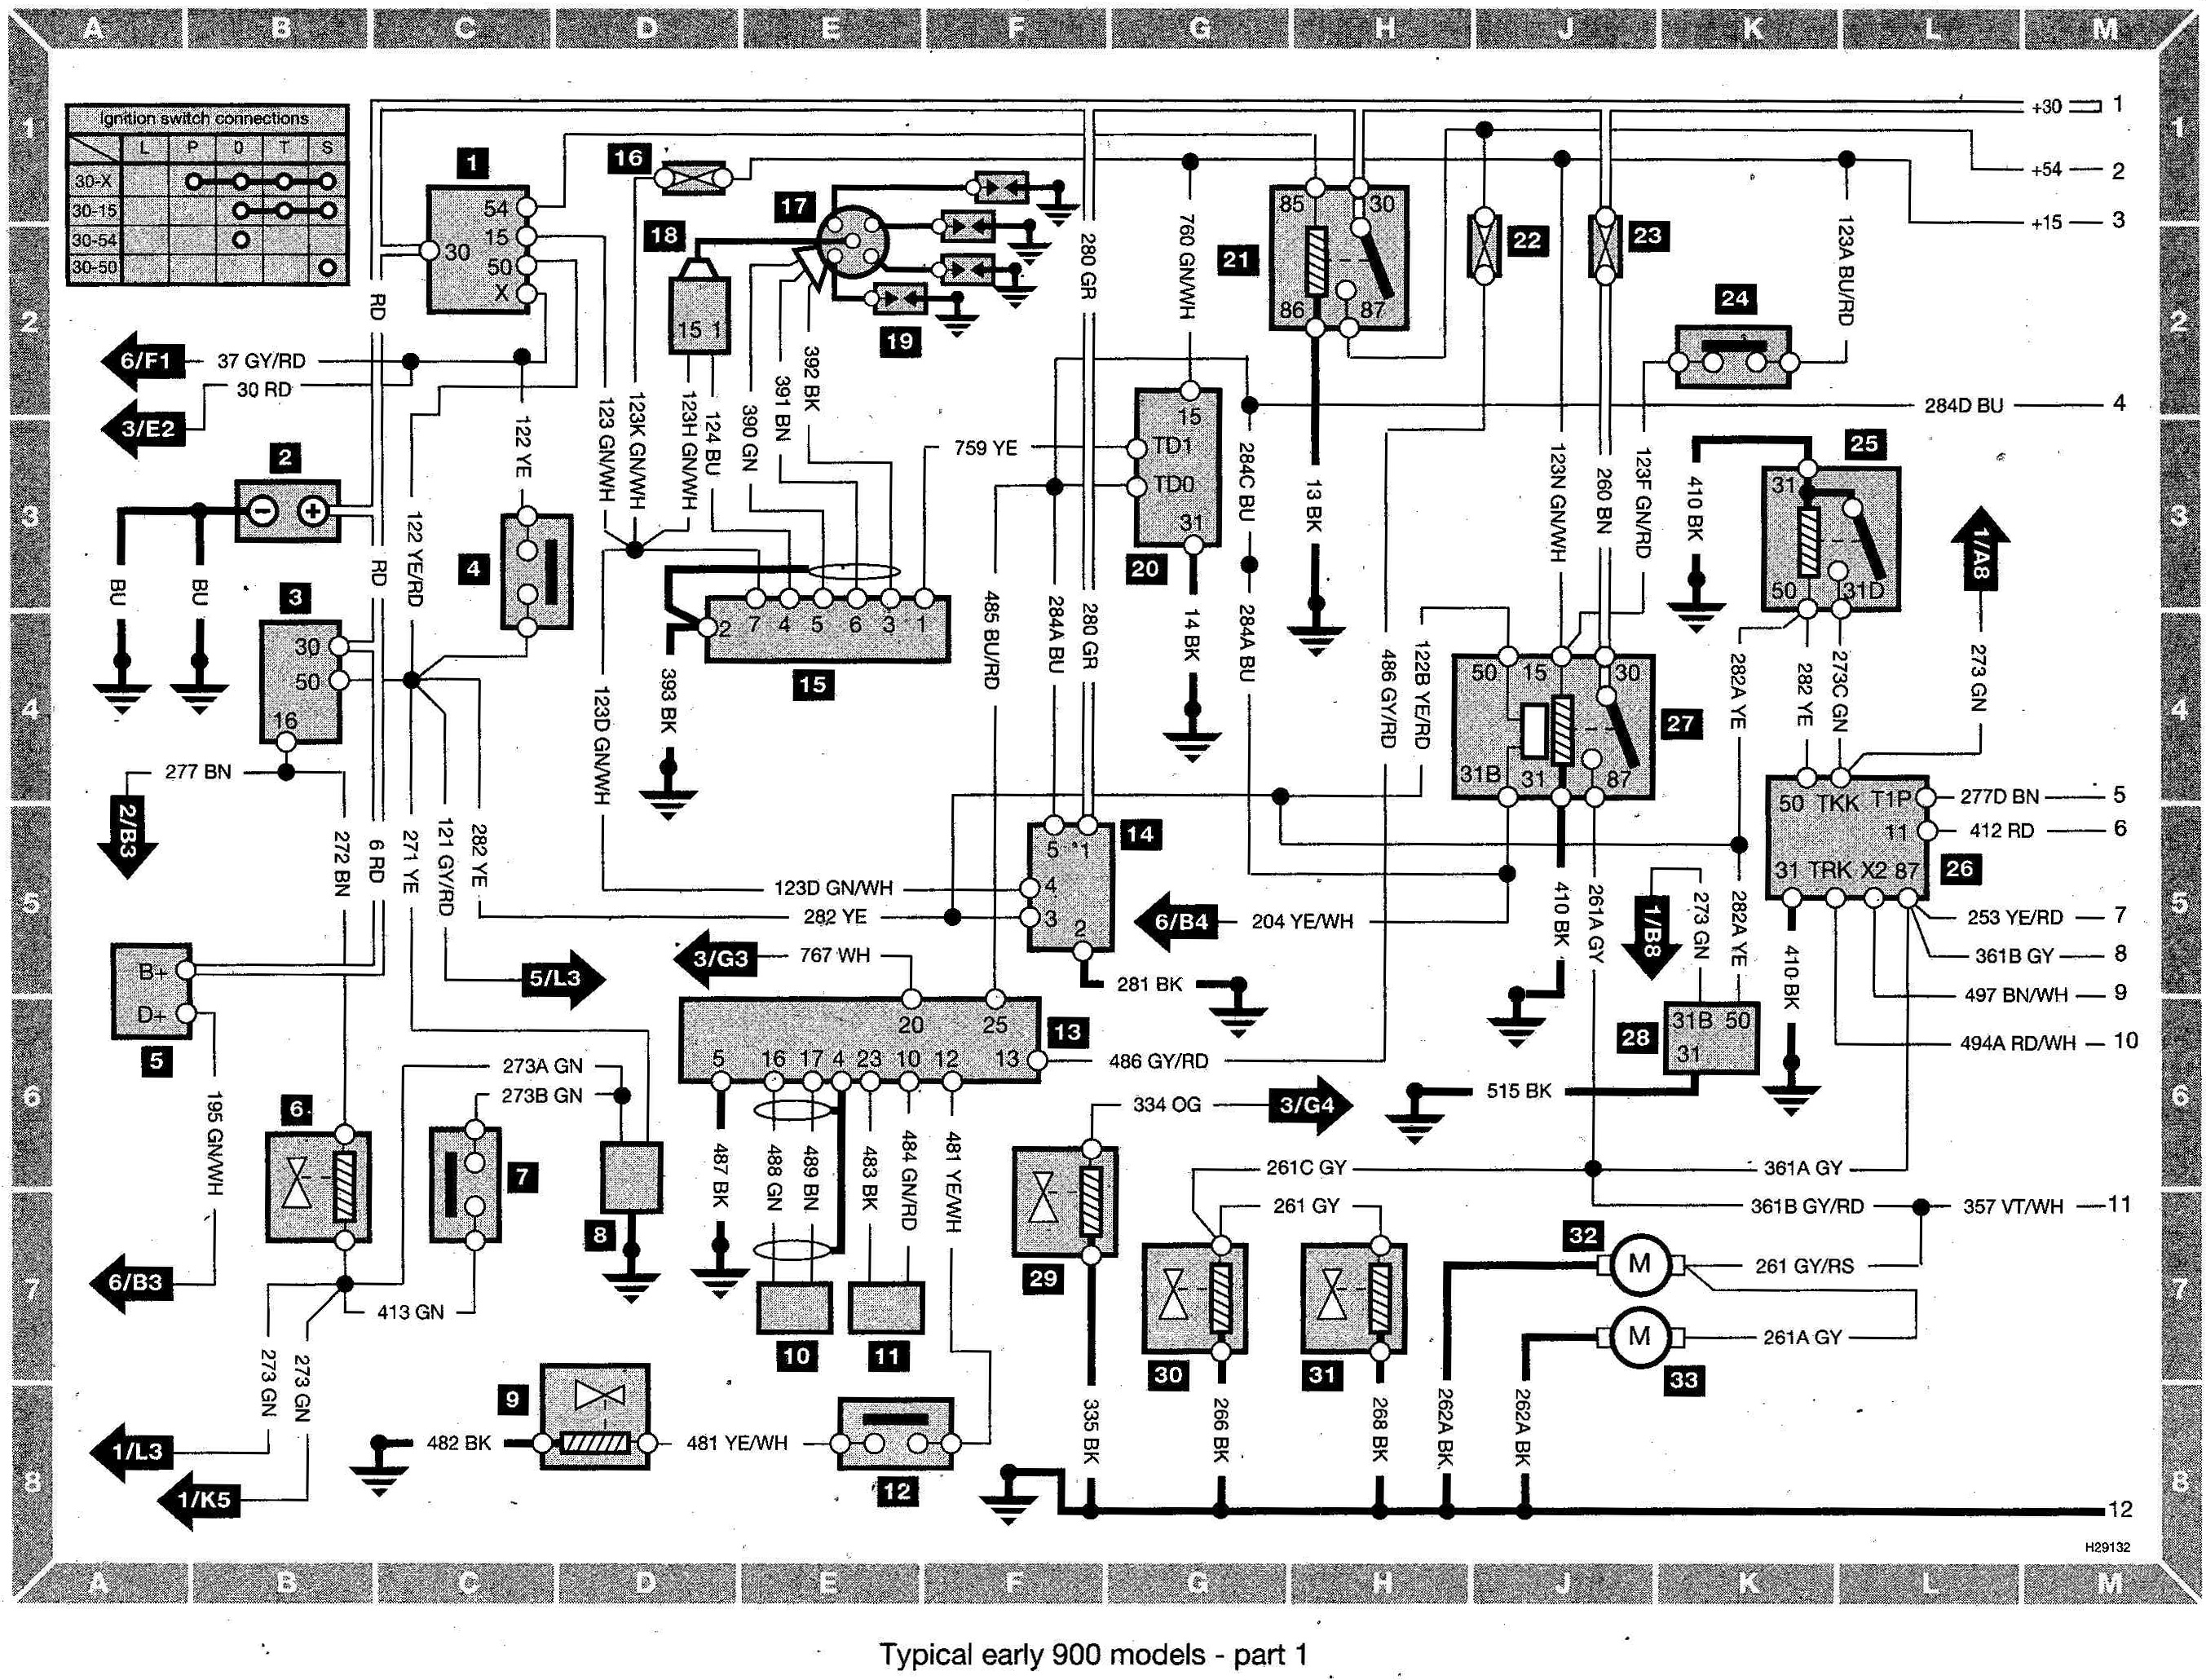 Saab 900 Wiring diagram (early models) part 1 saab ac wiring diagrams saab wiring diagrams instruction BU-353 Light Green at n-0.co